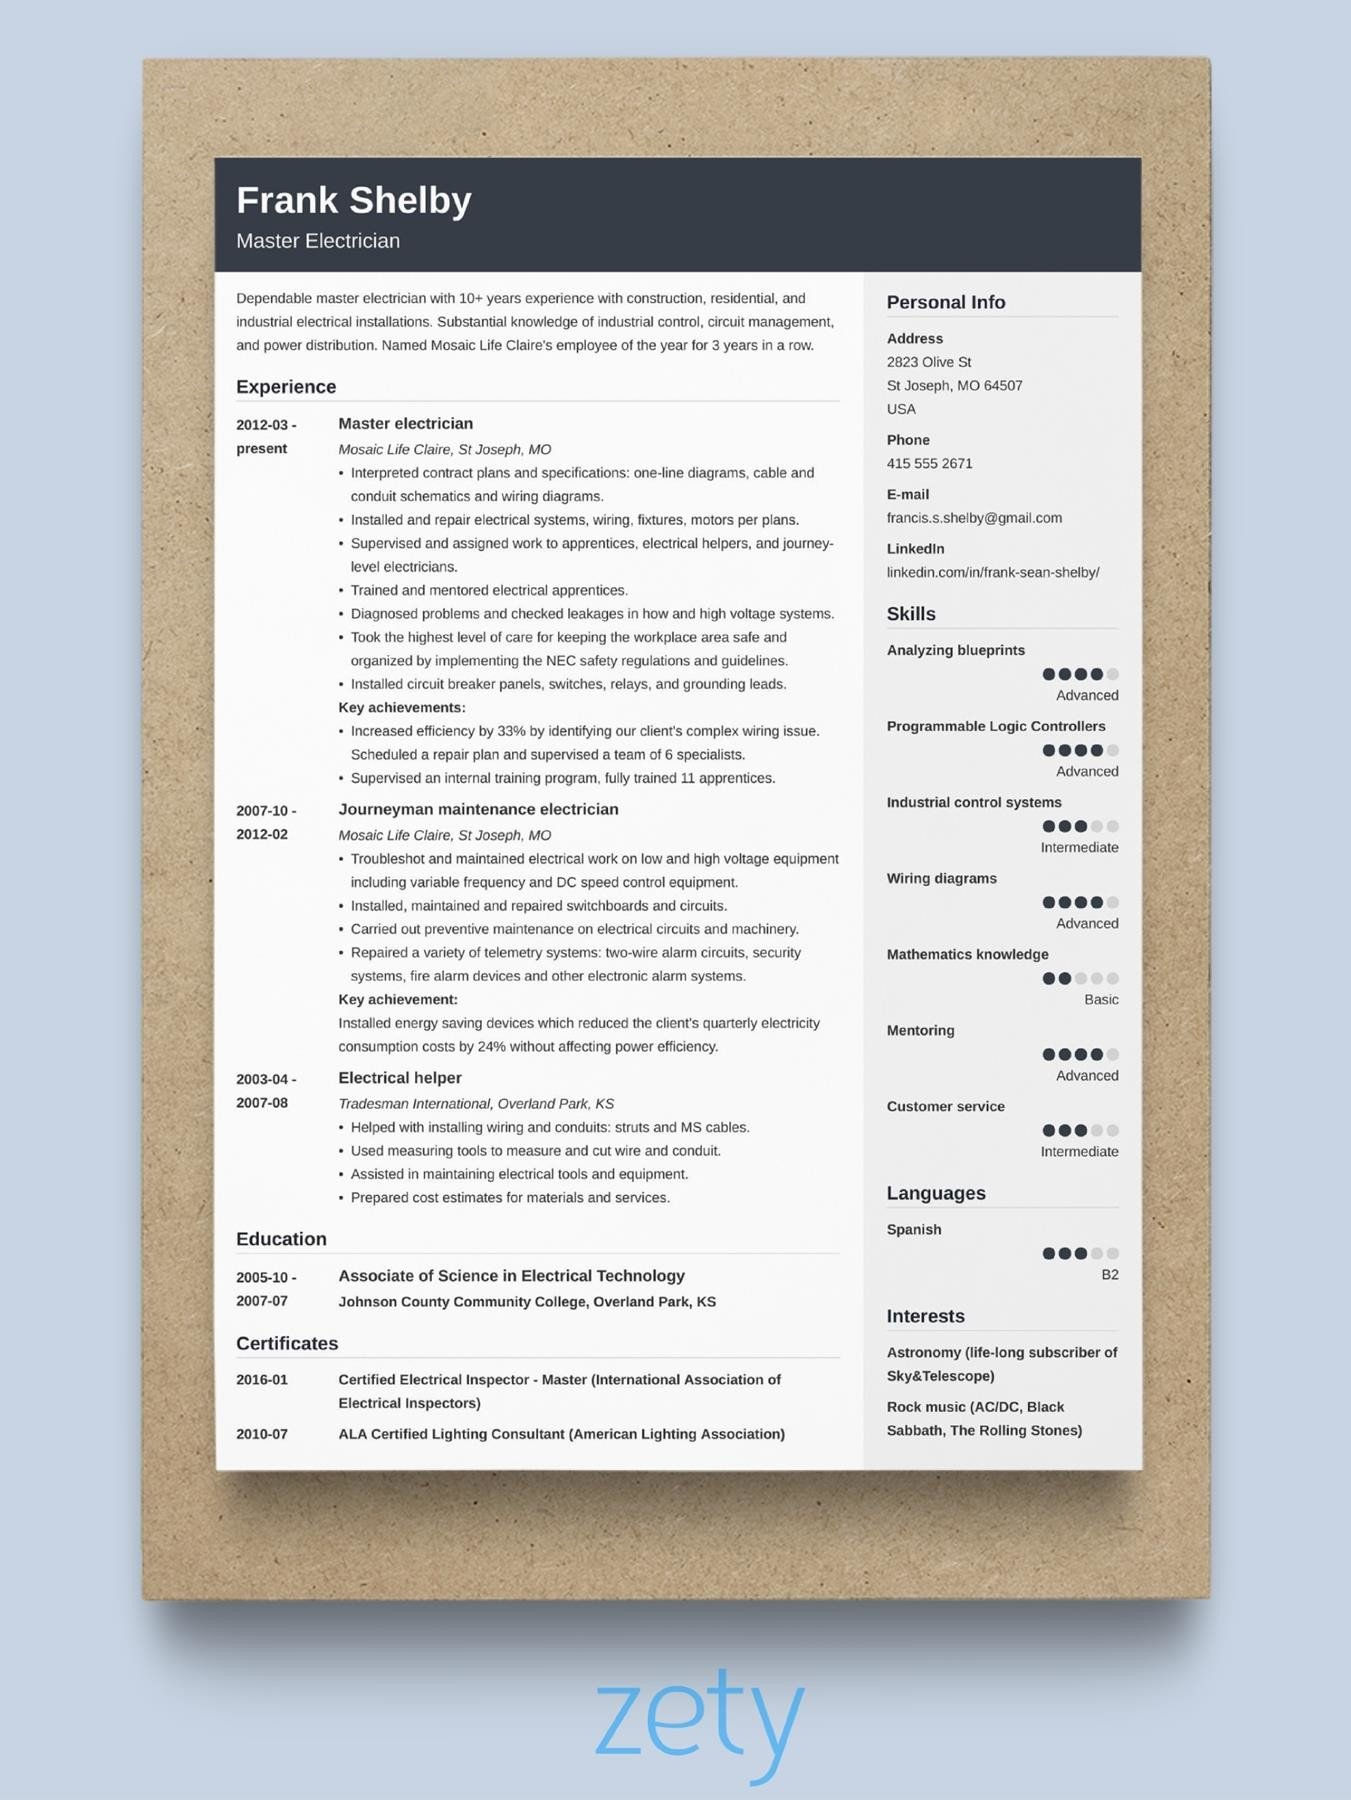 best resume format professional samples the entry level job internship for freshers Resume The Best Resume Format 2020